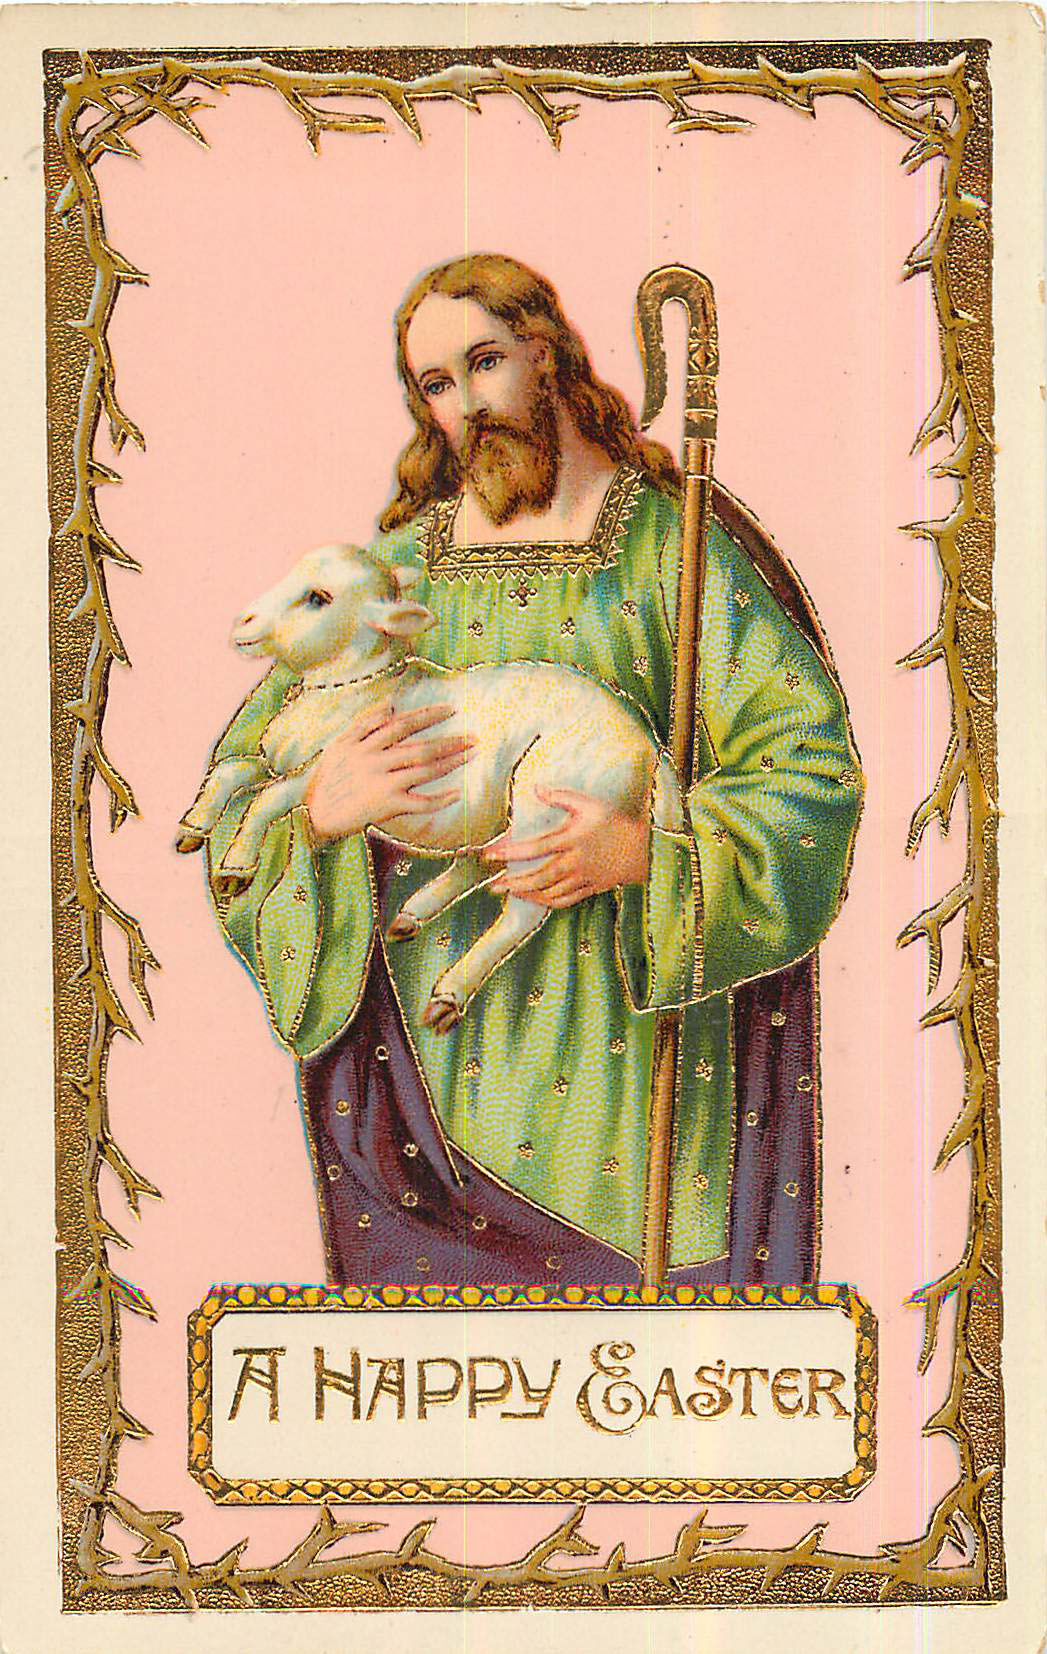 A Happy Easter - Holding a lamb and staff